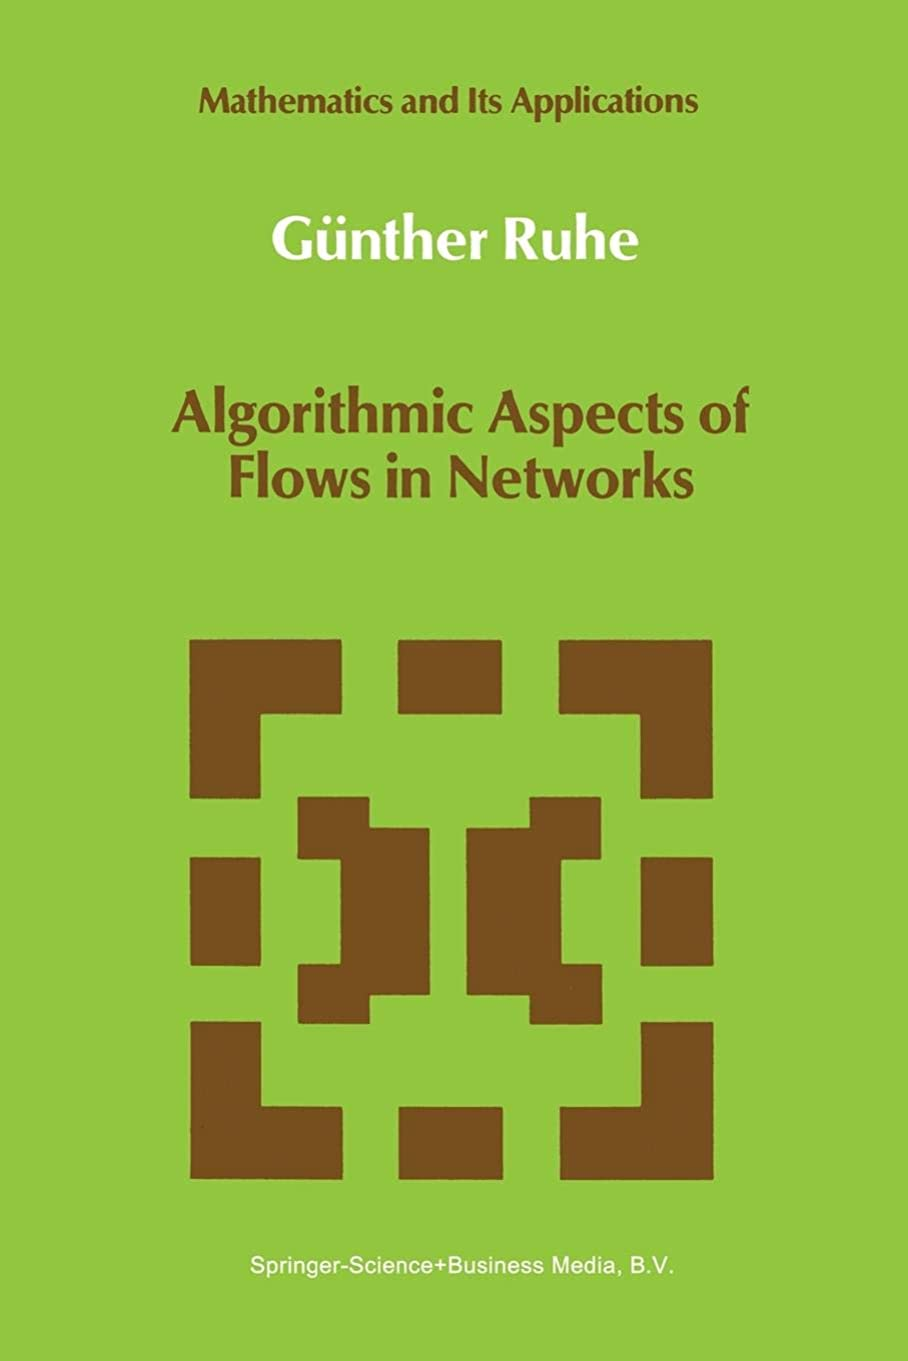 消化ヒュームゴールAlgorithmic Aspects of Flows in Networks (Mathematics and Its Applications)